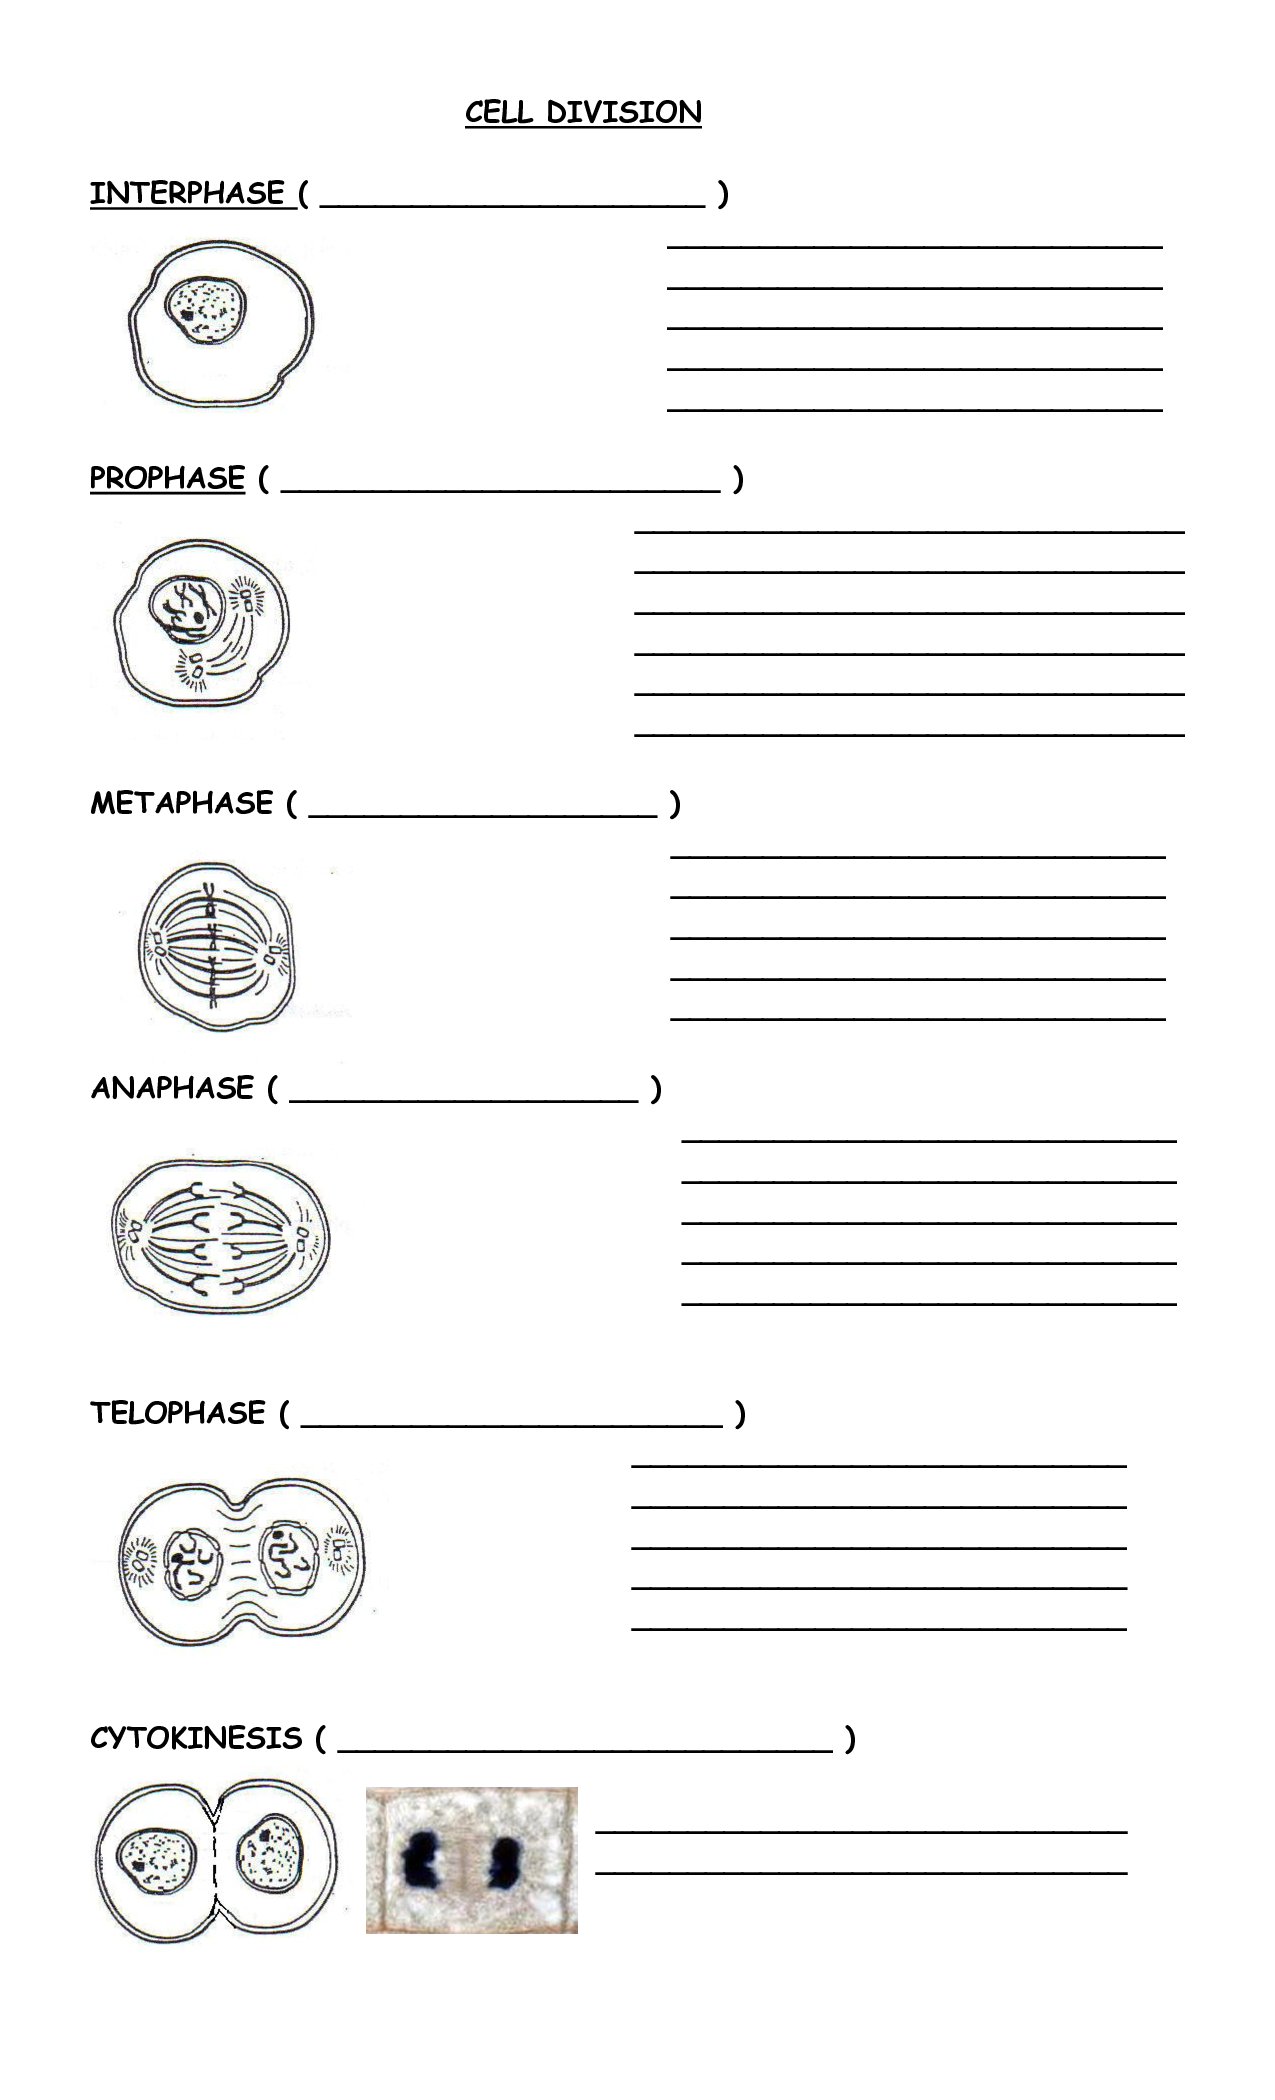 worksheet Cell Cycle Mitosis Worksheet cell cycle and mitosis worksheet pdf my science class ms pinzon 39 s 6th grade